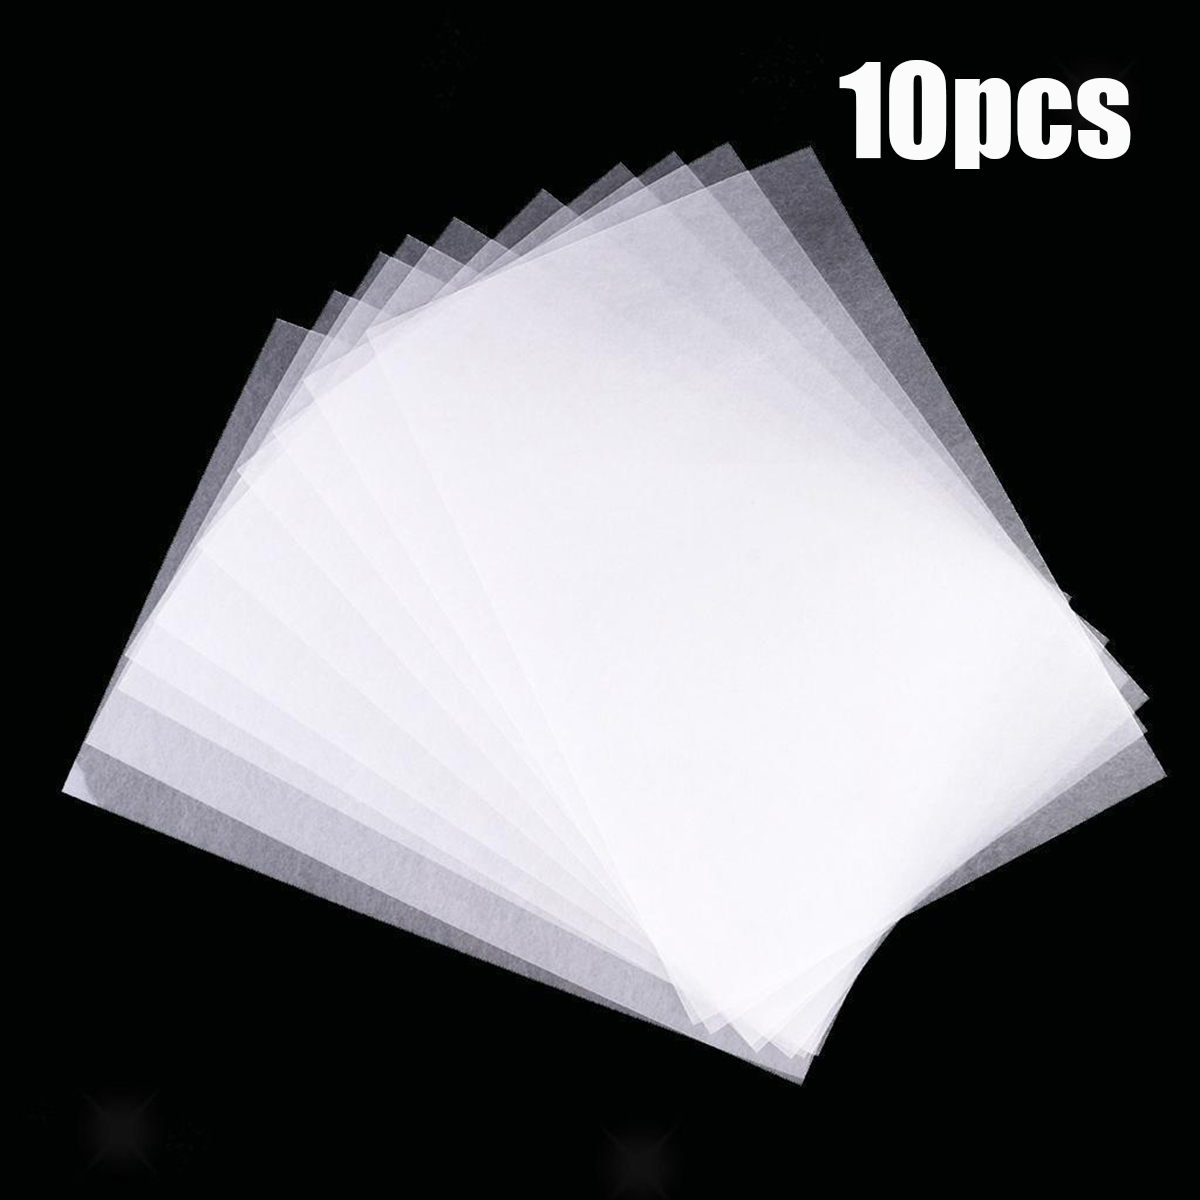 10 Pcs Heat Shrink Papers Film Sheets DIY Jewelry Hanging Craft Making Decor Paper Cards Art Scrapbooking Die Cut Polish Boards